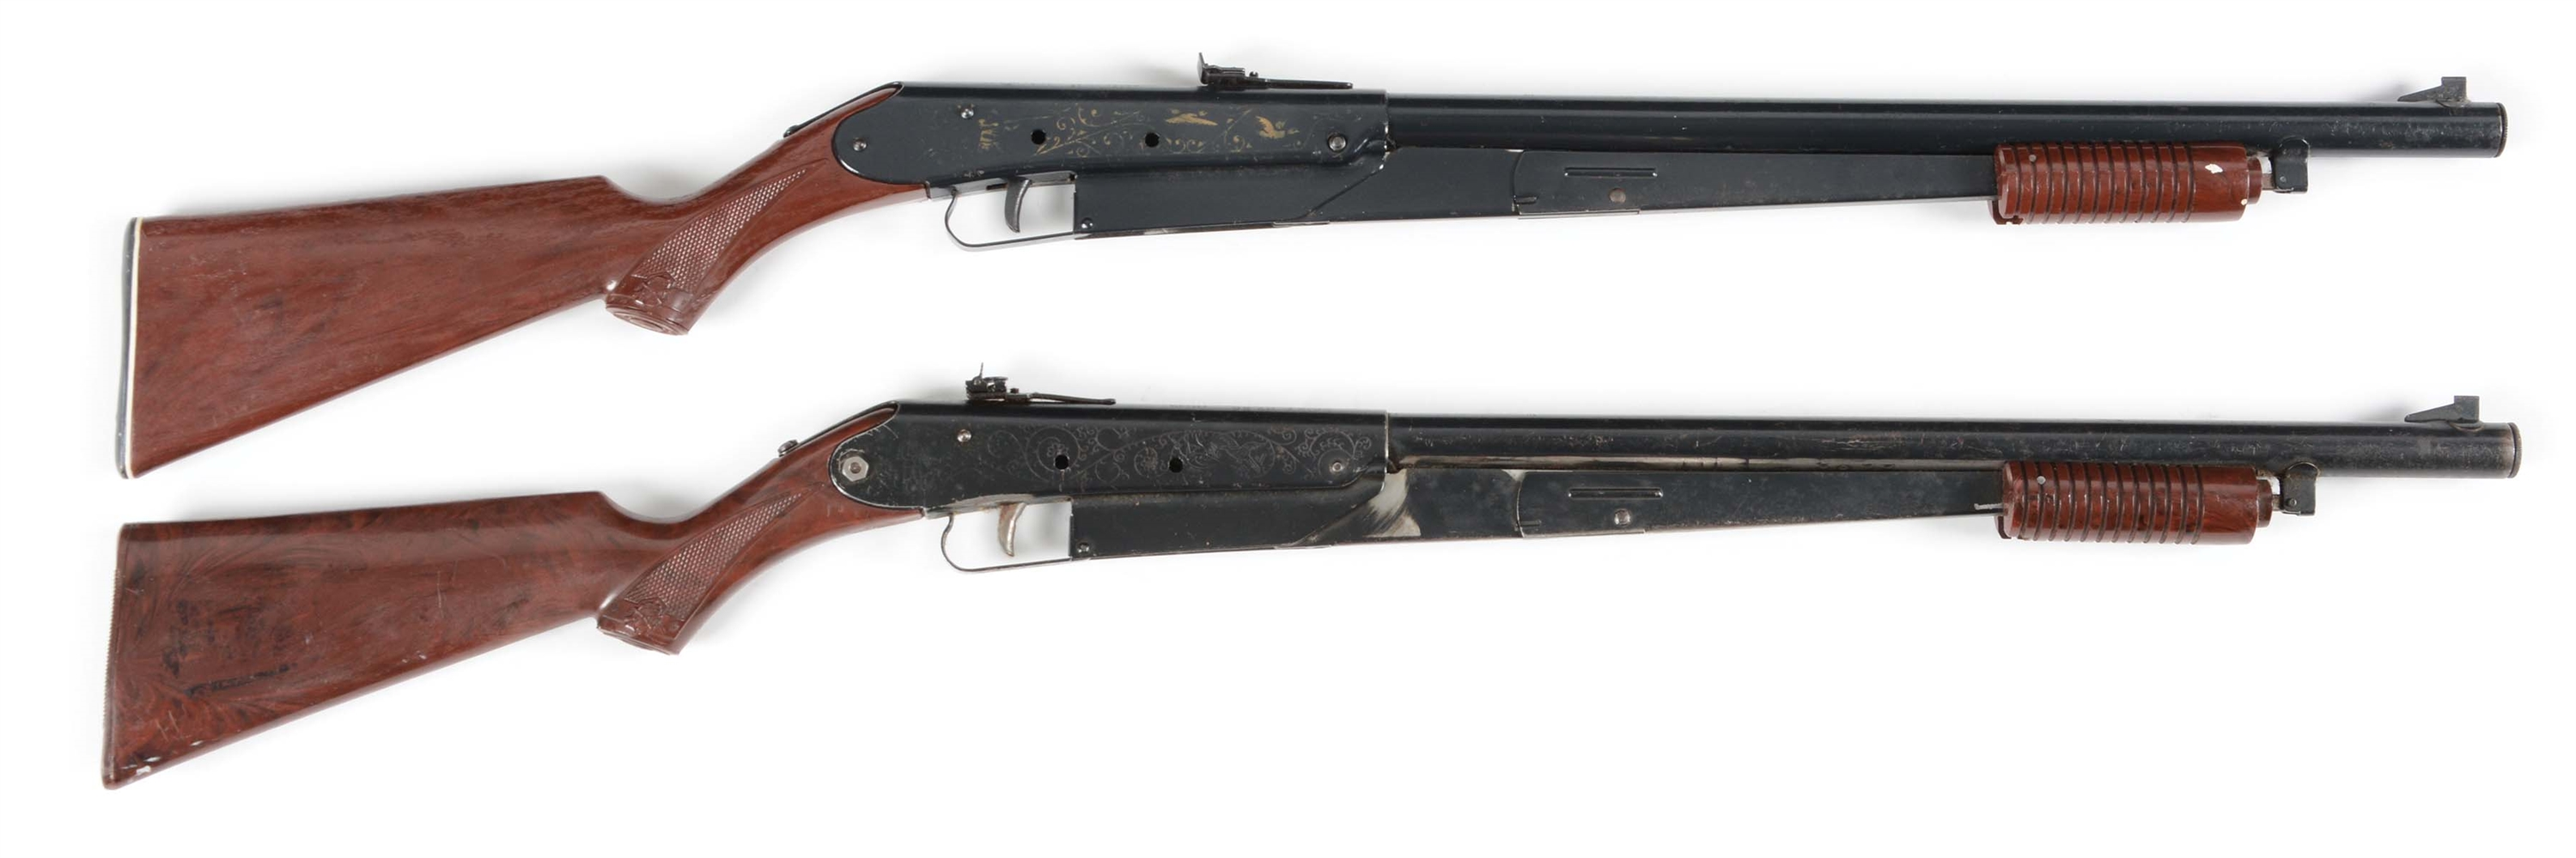 Lot of 2: Daisy Model 25 Air Rifles.